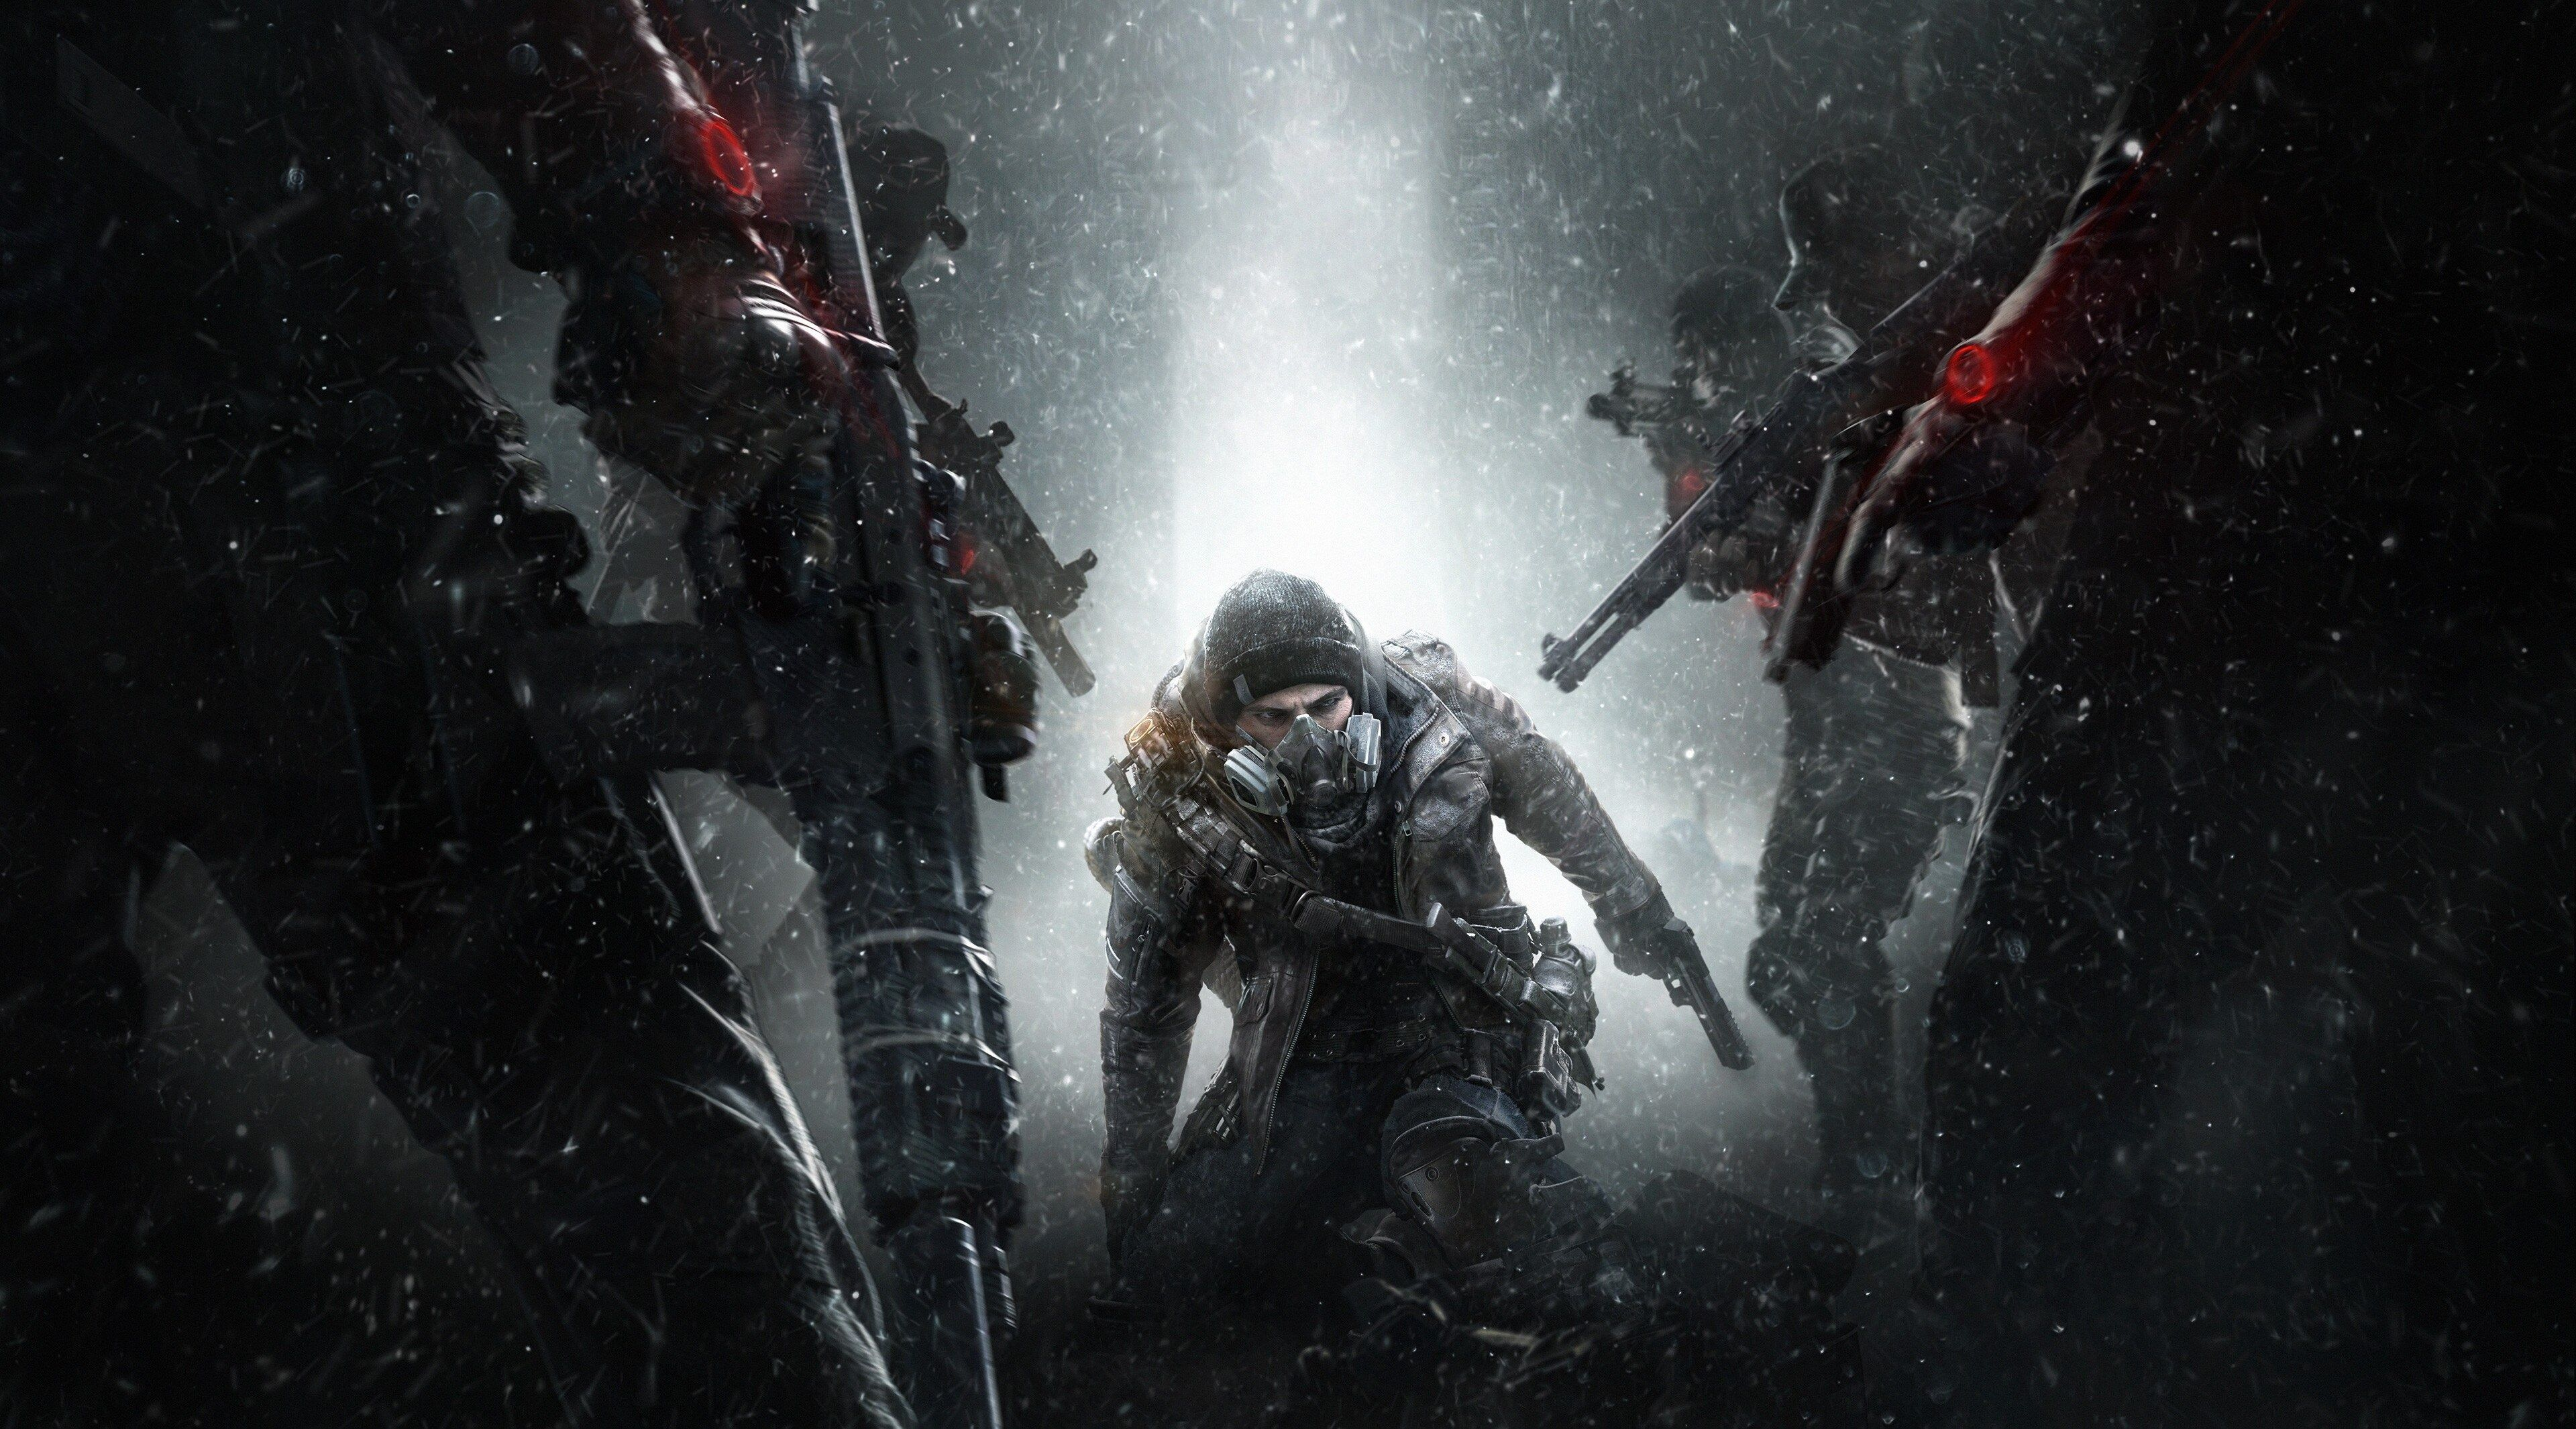 3840x2130 Tom Clancys The Division Survival 4k Free Wallpaper Downloads For Pc Tom Clancy The Division Tom Clancy Gaming Wallpapers